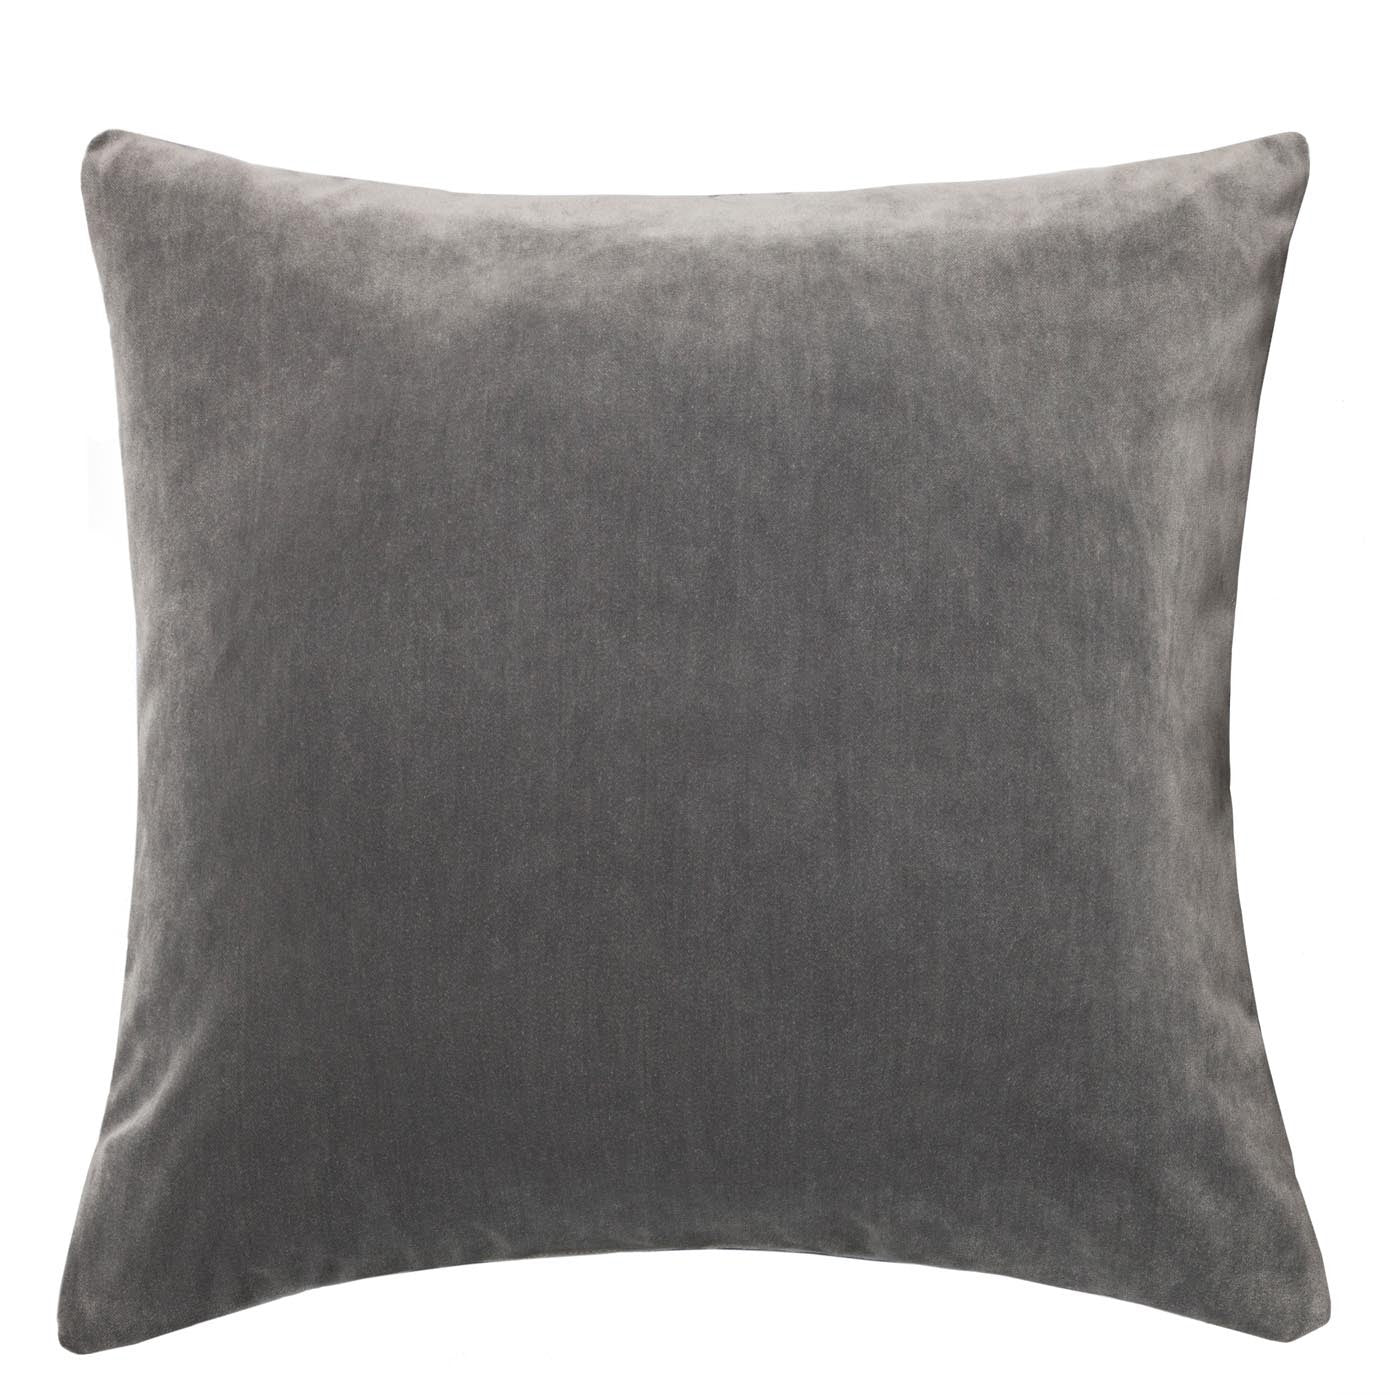 Large handmade cushion - Pepper